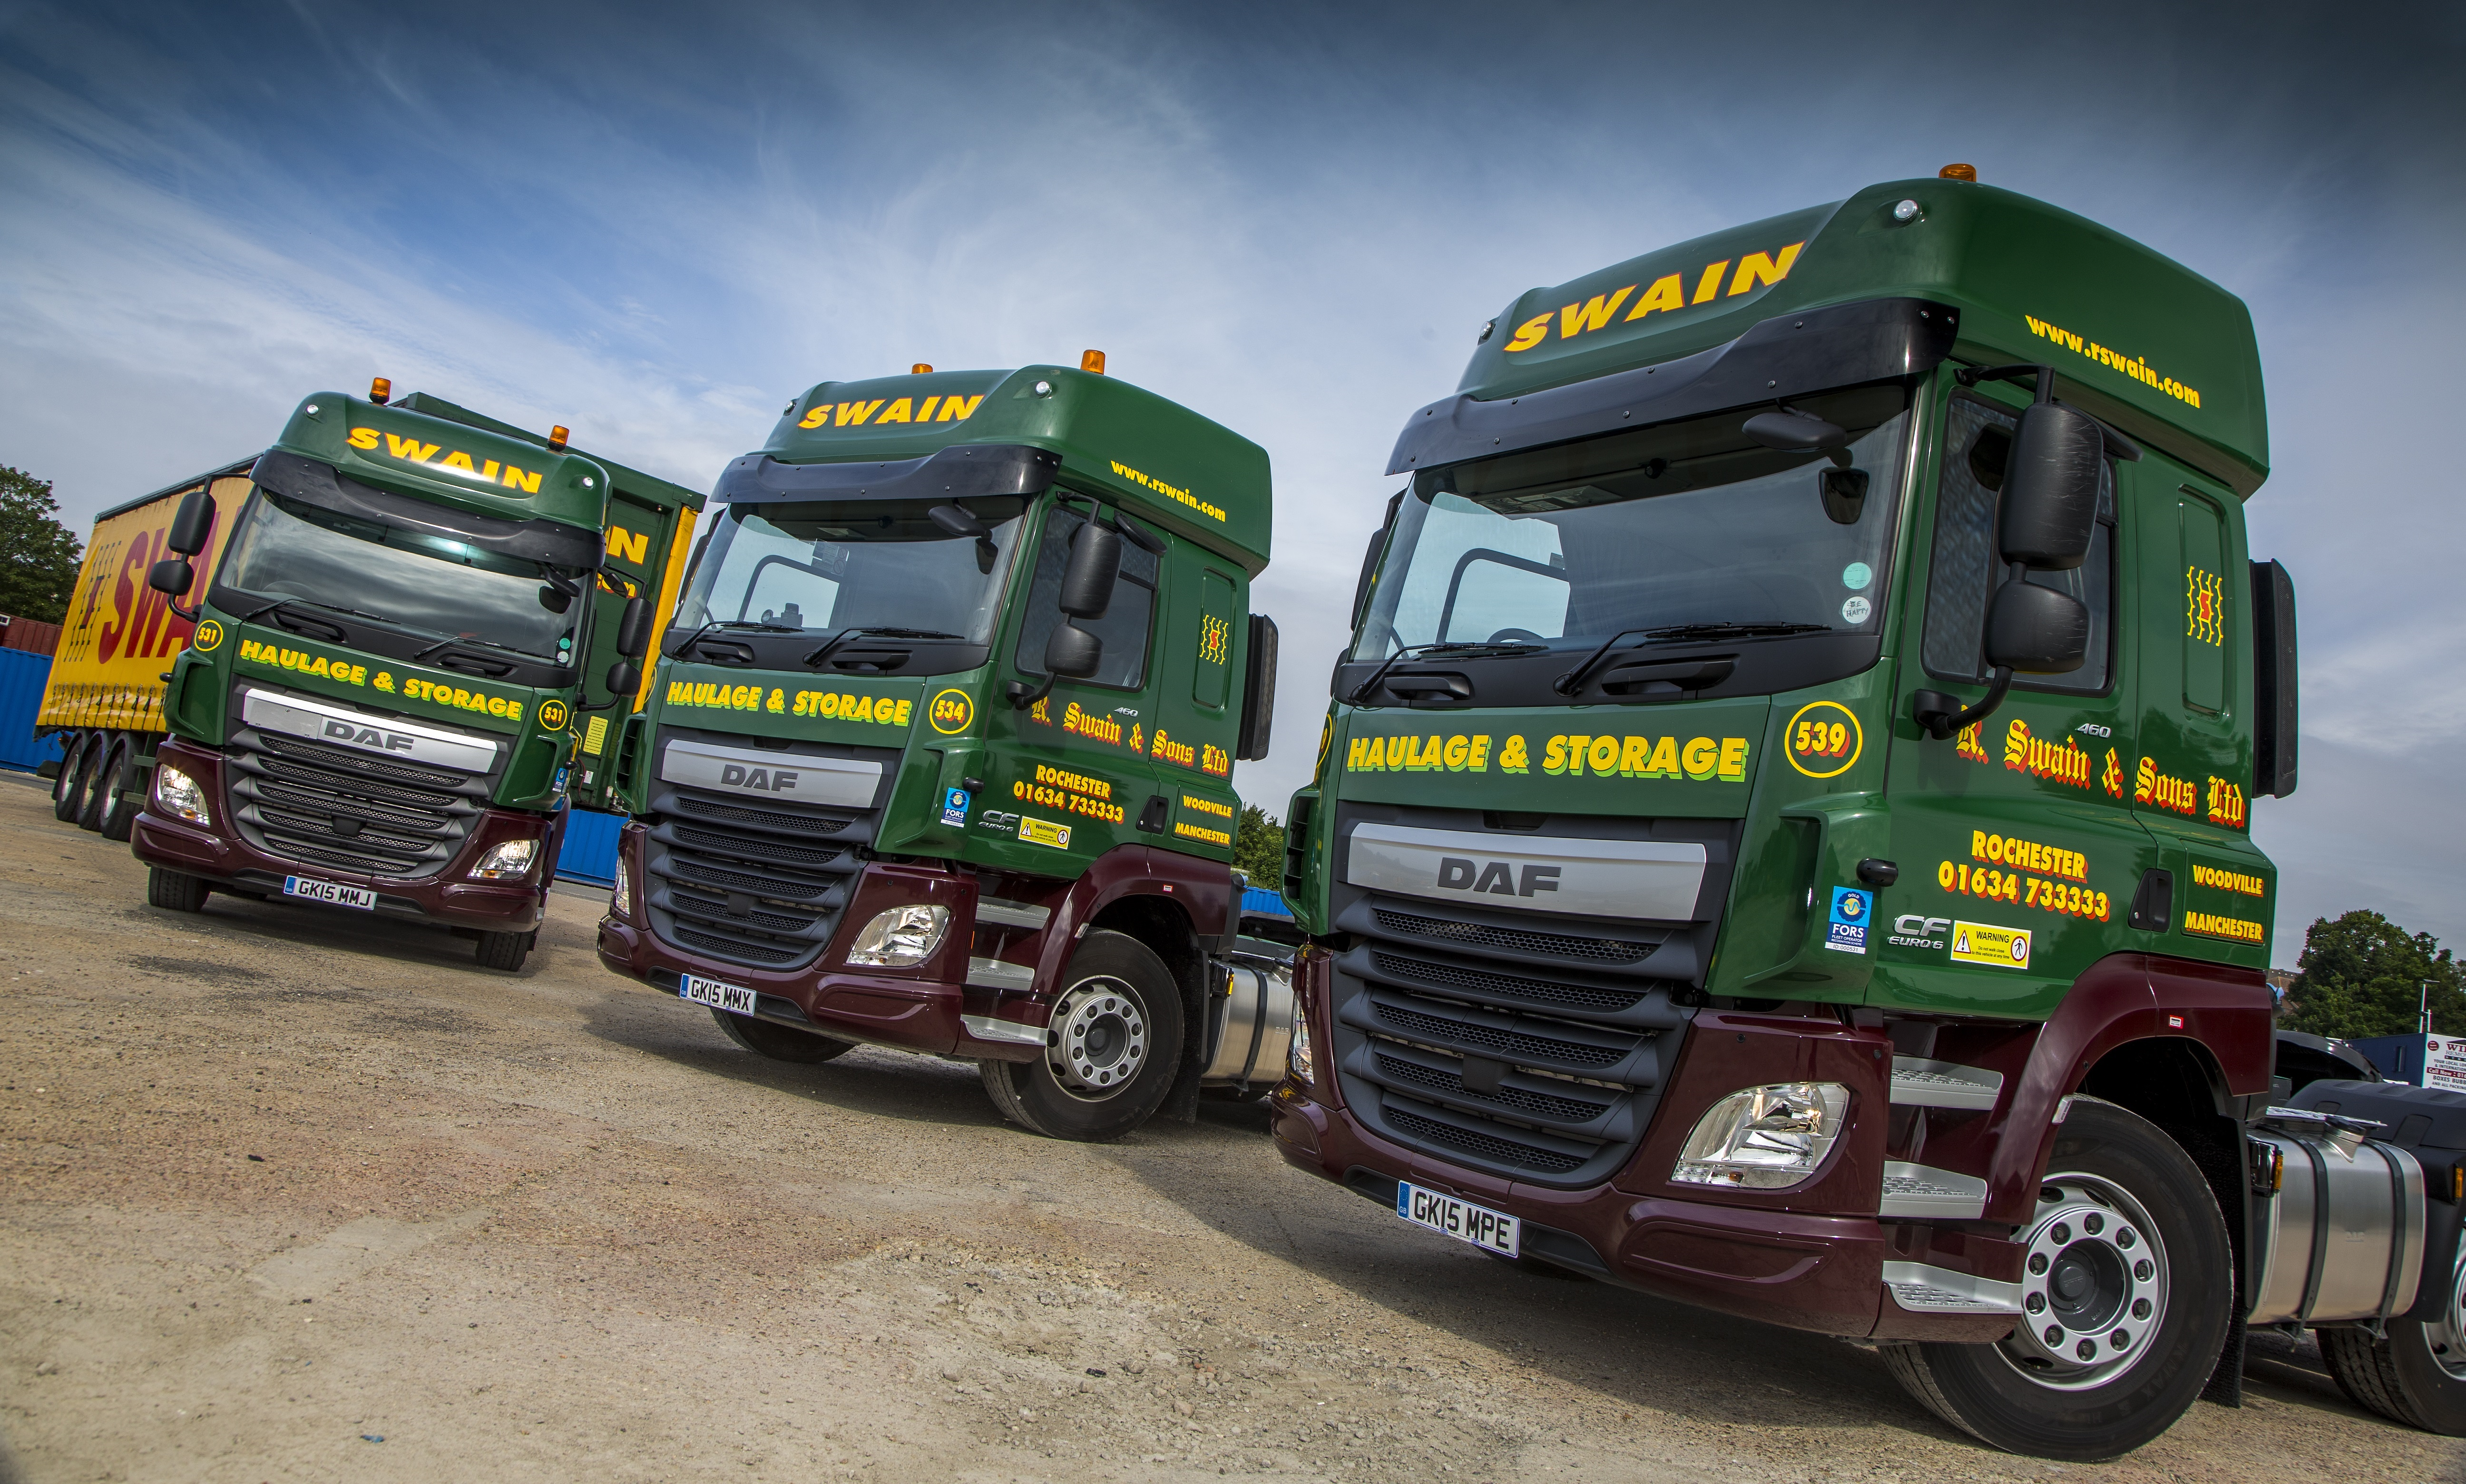 New Daf Fleet Underlines Booming Business At R Swain